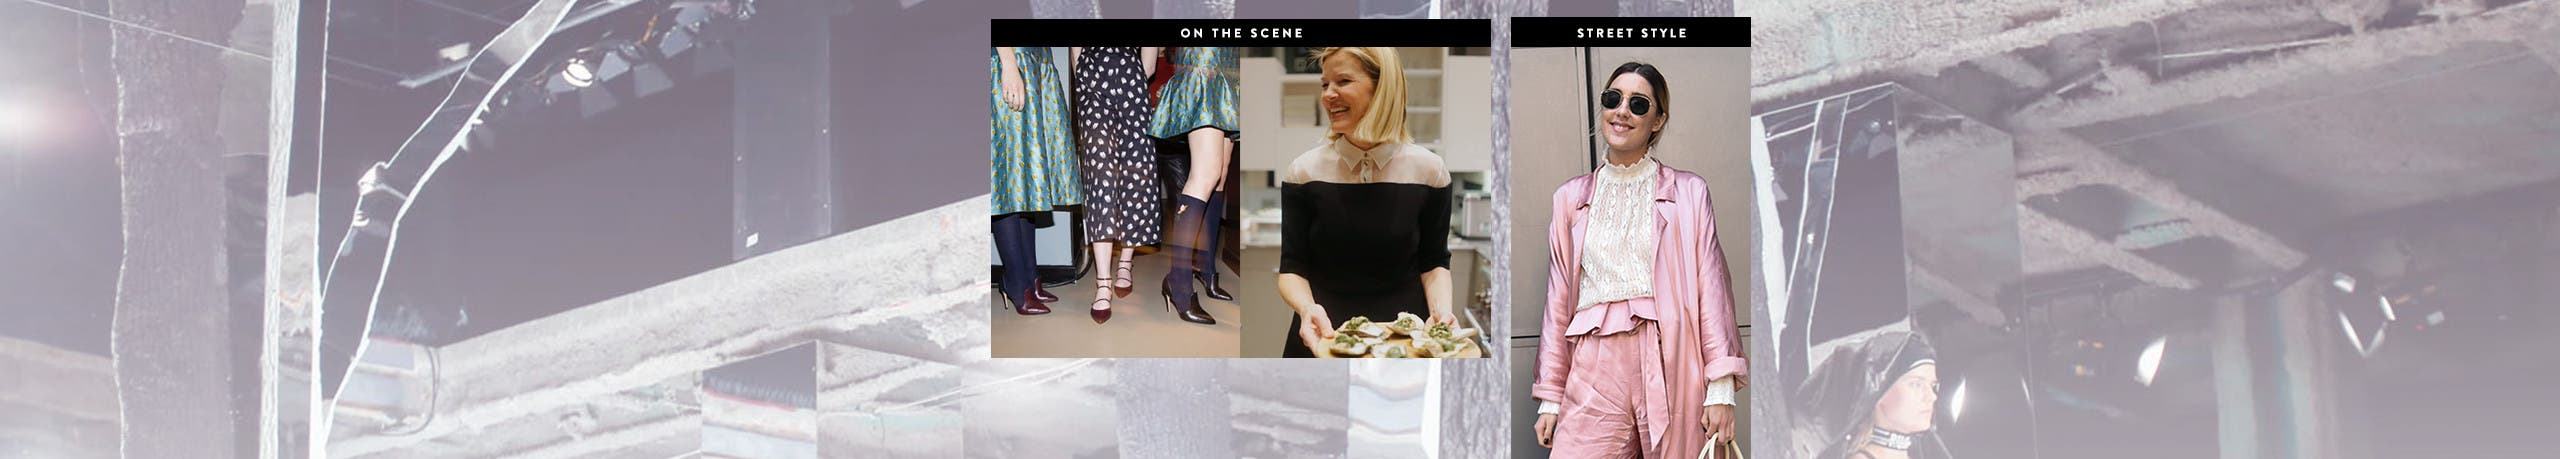 On the scene at Fashion Week: dinner with Lela Rose. Fashion Week street style: the best of New York.